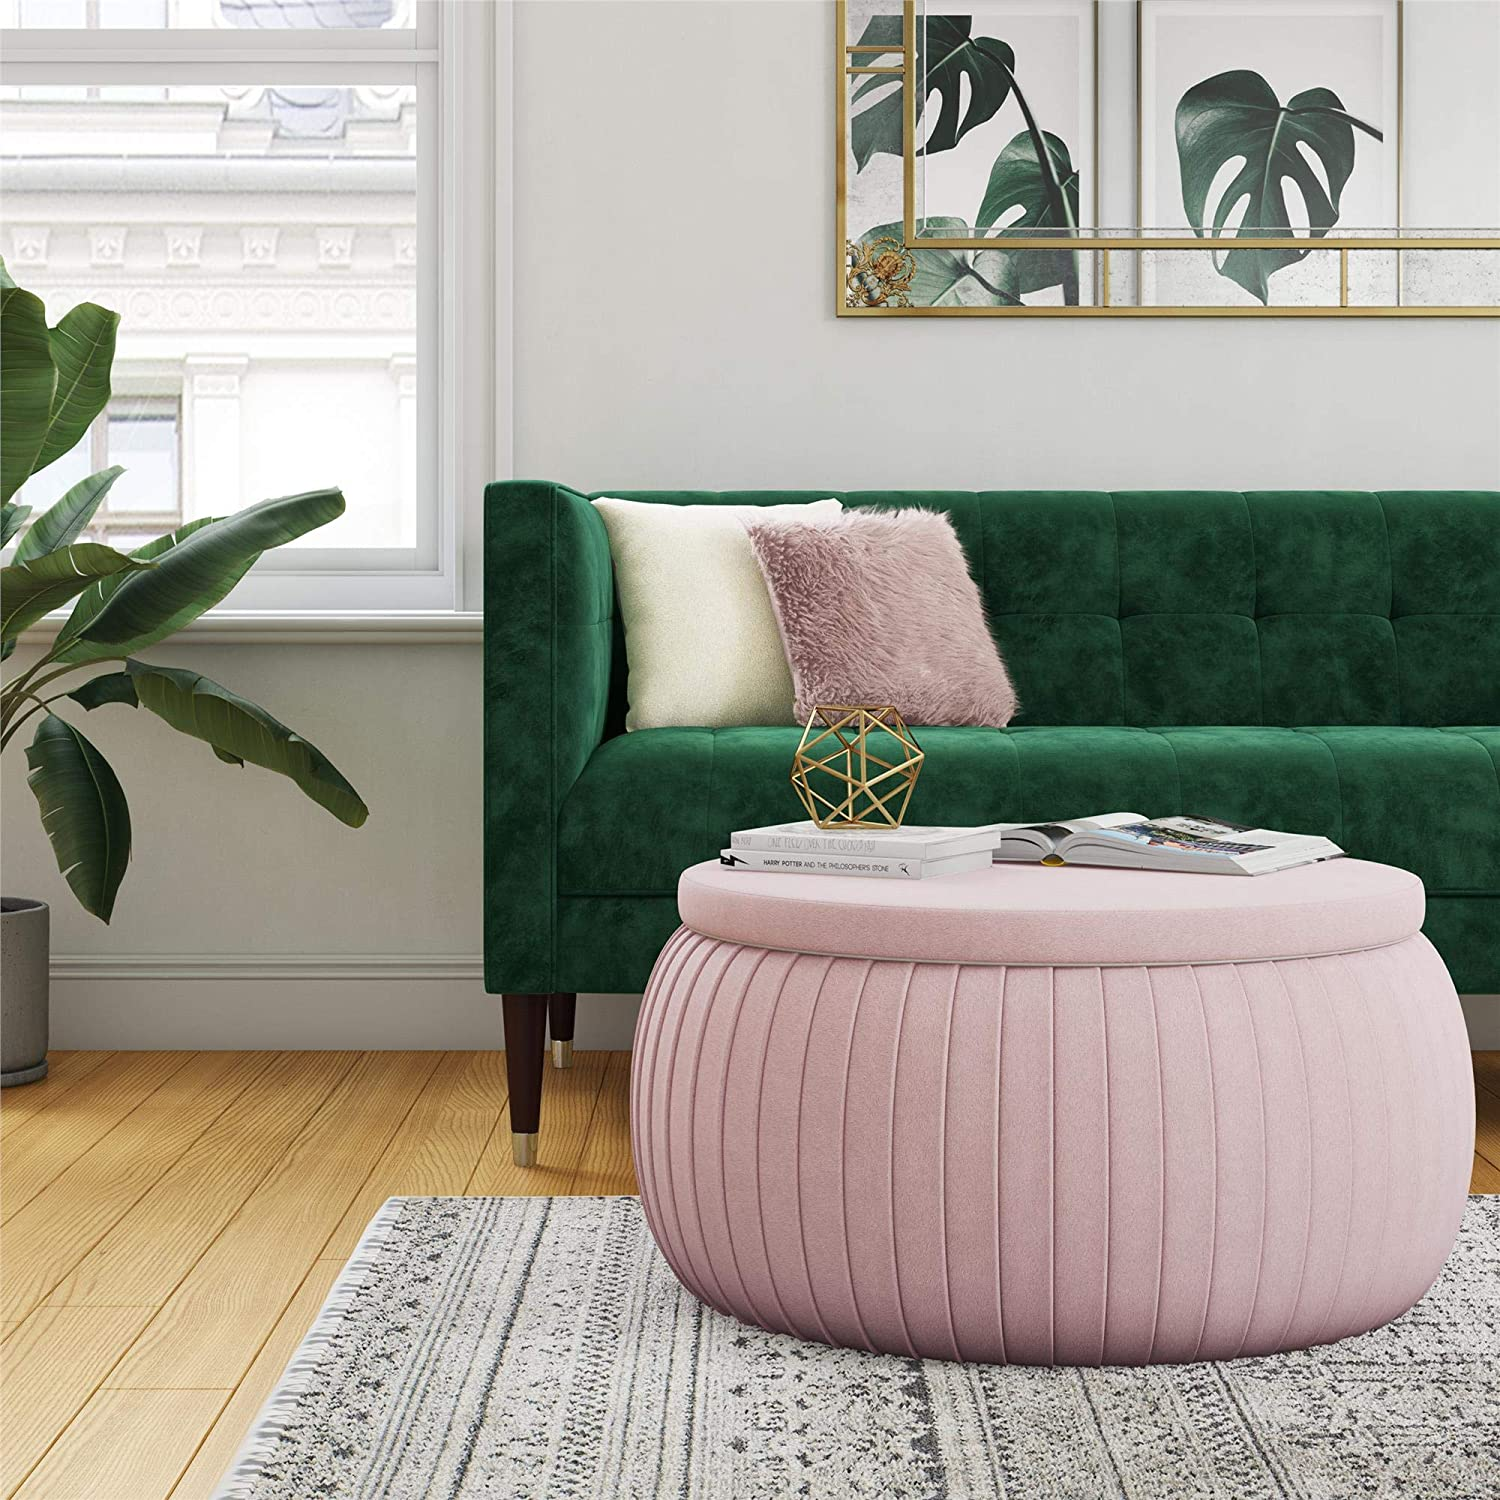 Cosmoliving Sapphire Modern Storage Ottoman Coffee Table With Pleated Pink Velvet Fabric Amazon Ca Home Kitchen